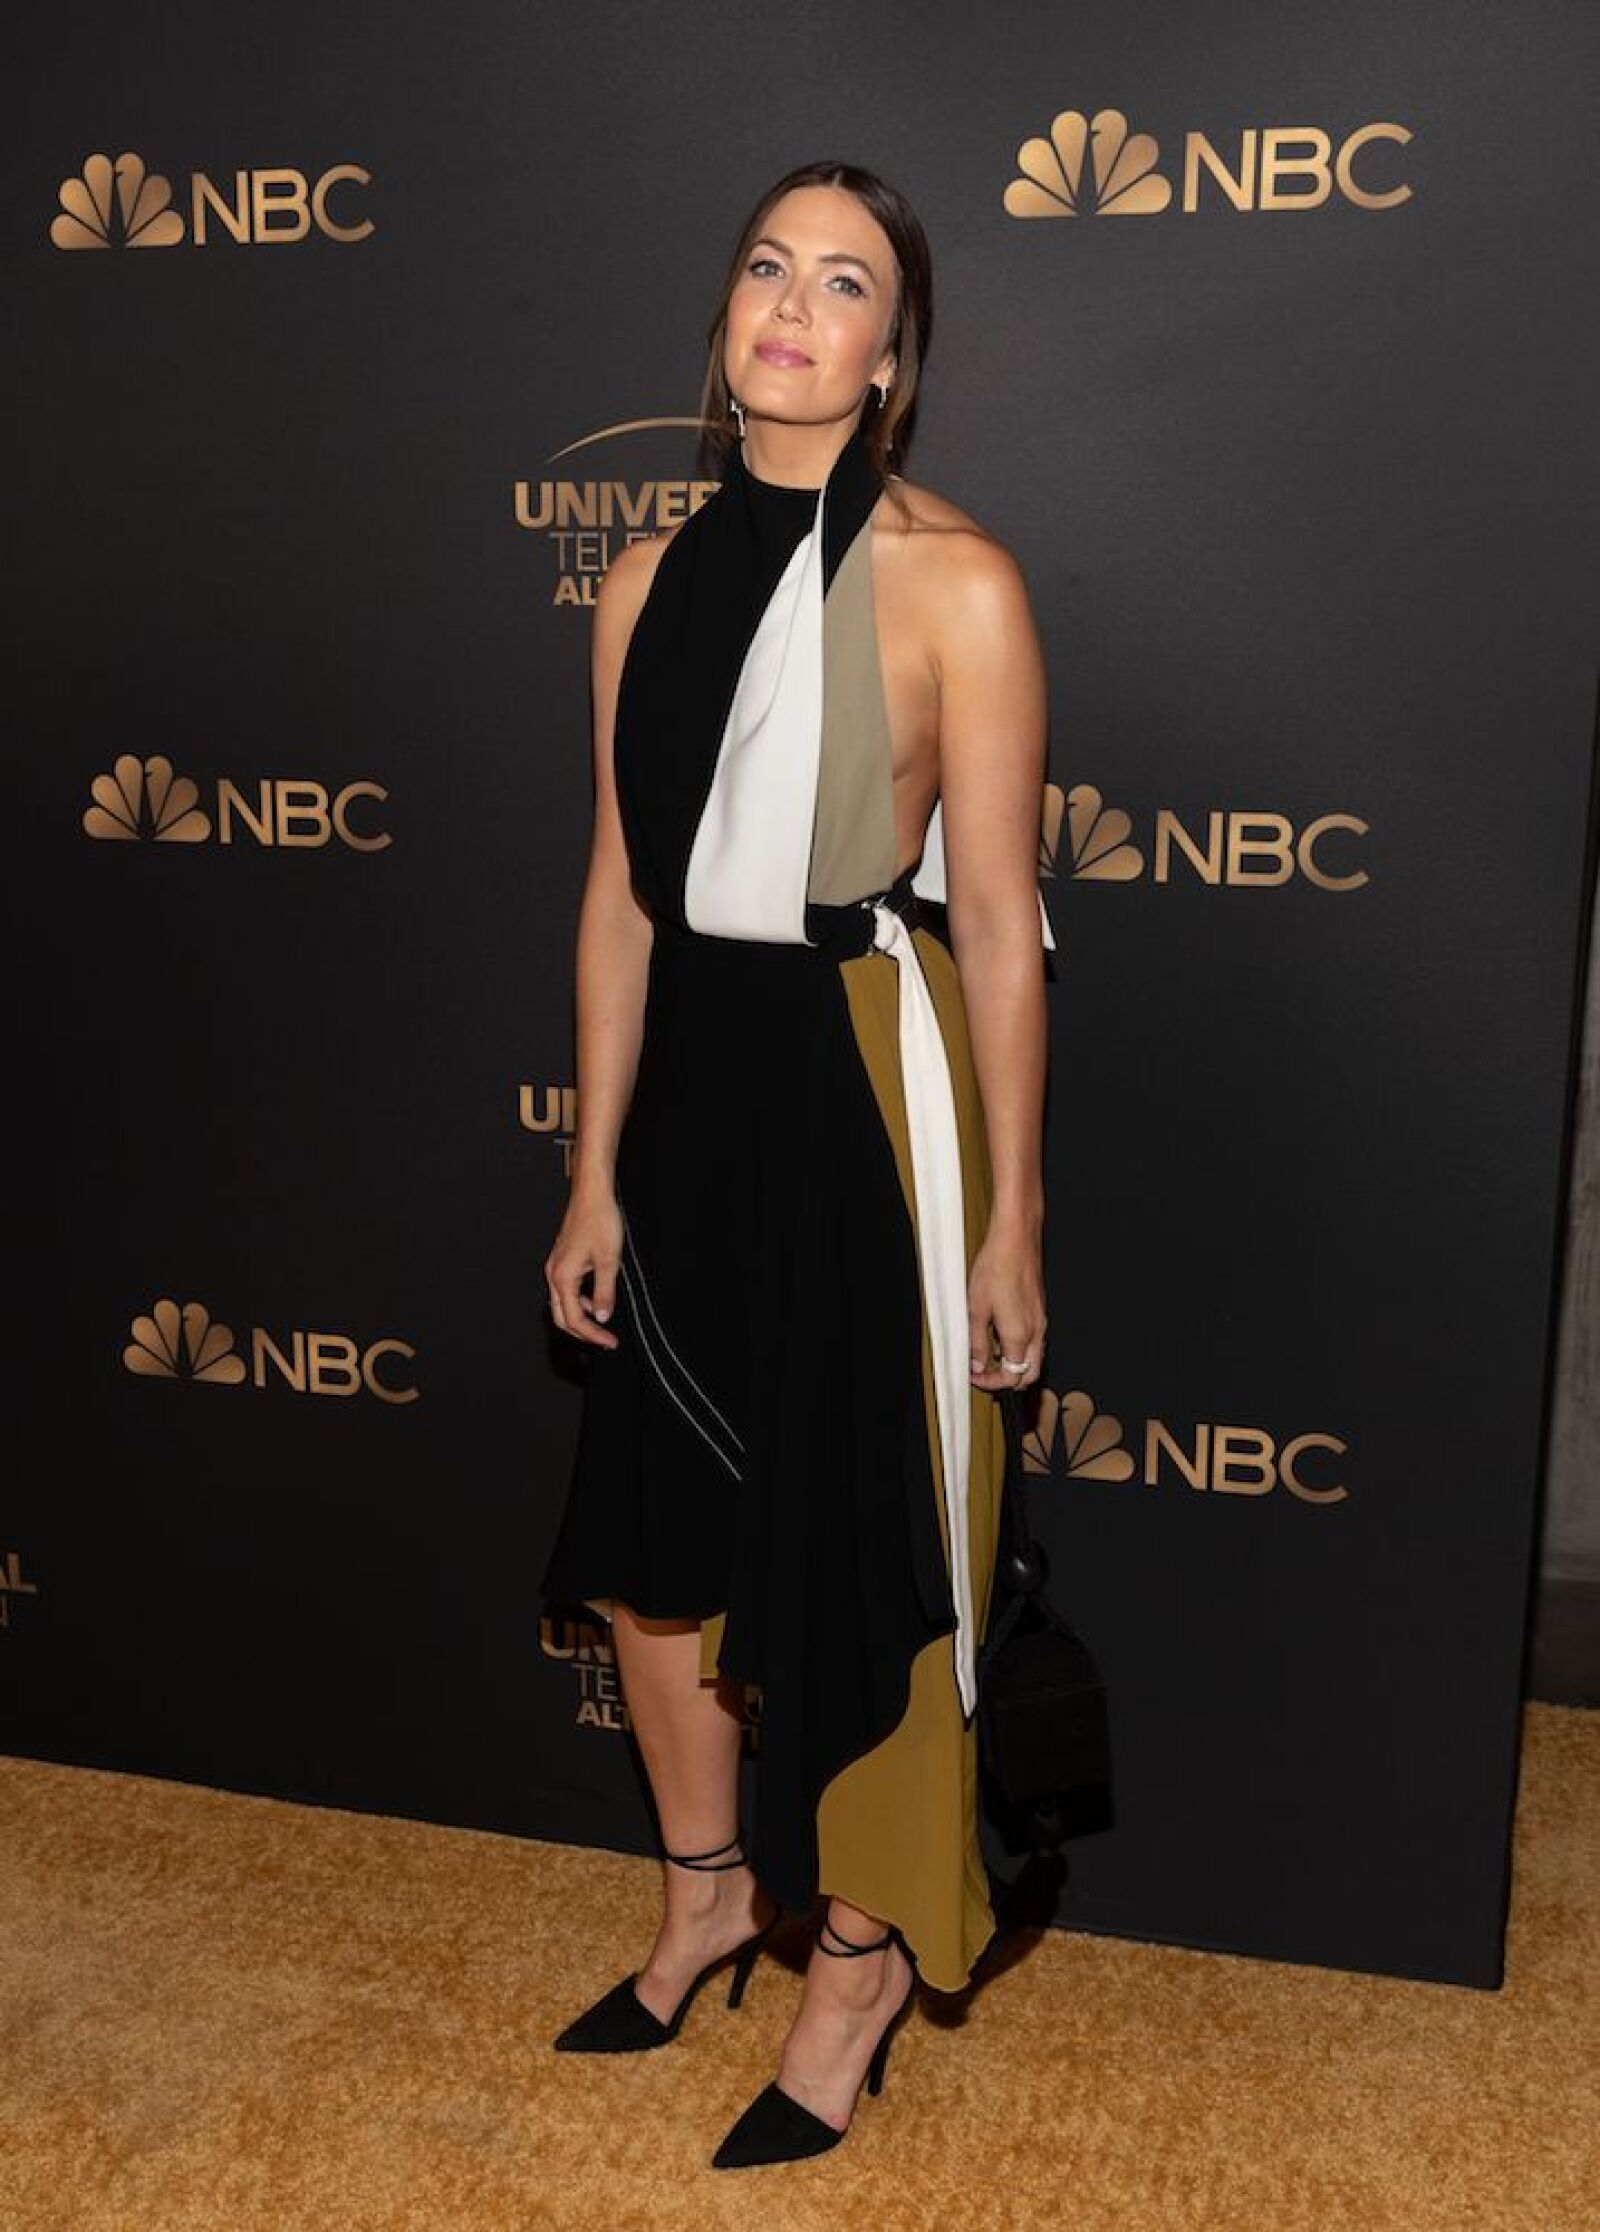 NBC Emmy Nominee Cocktail Party, Arrivals, Los Angeles, USA - 13 Aug 2019